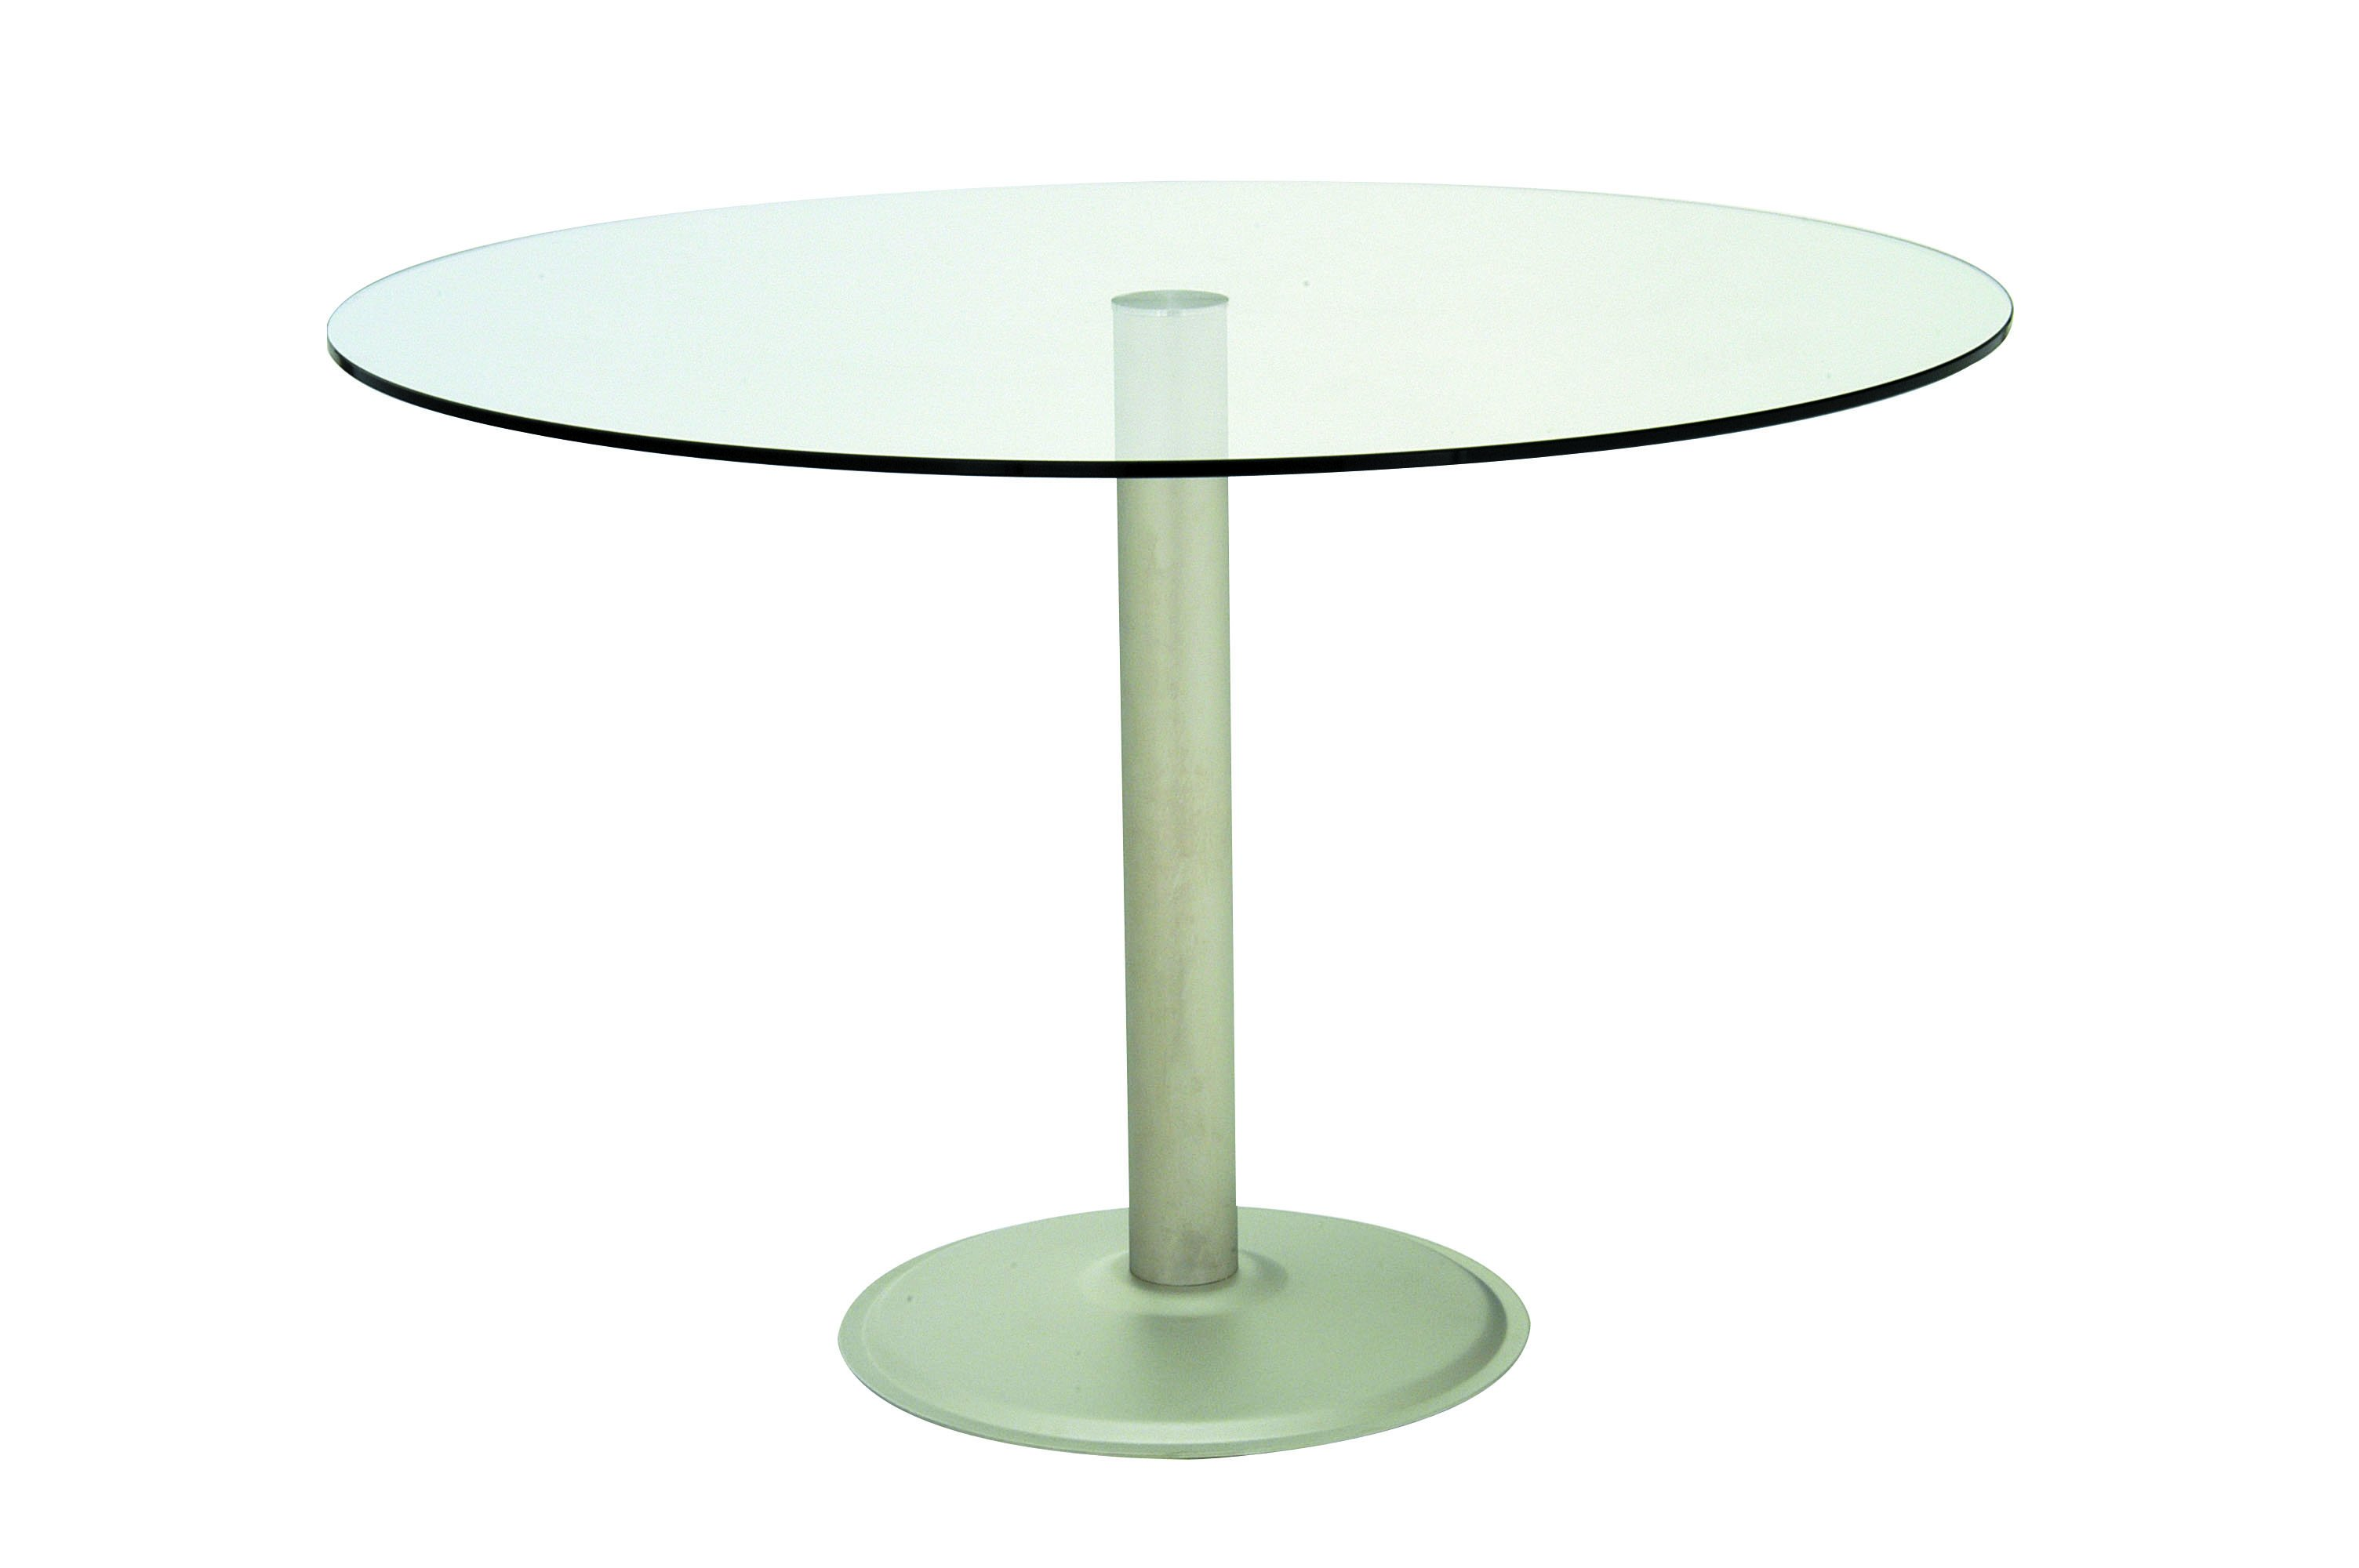 Glasgow centre pedestal dining table Pedestal dining table